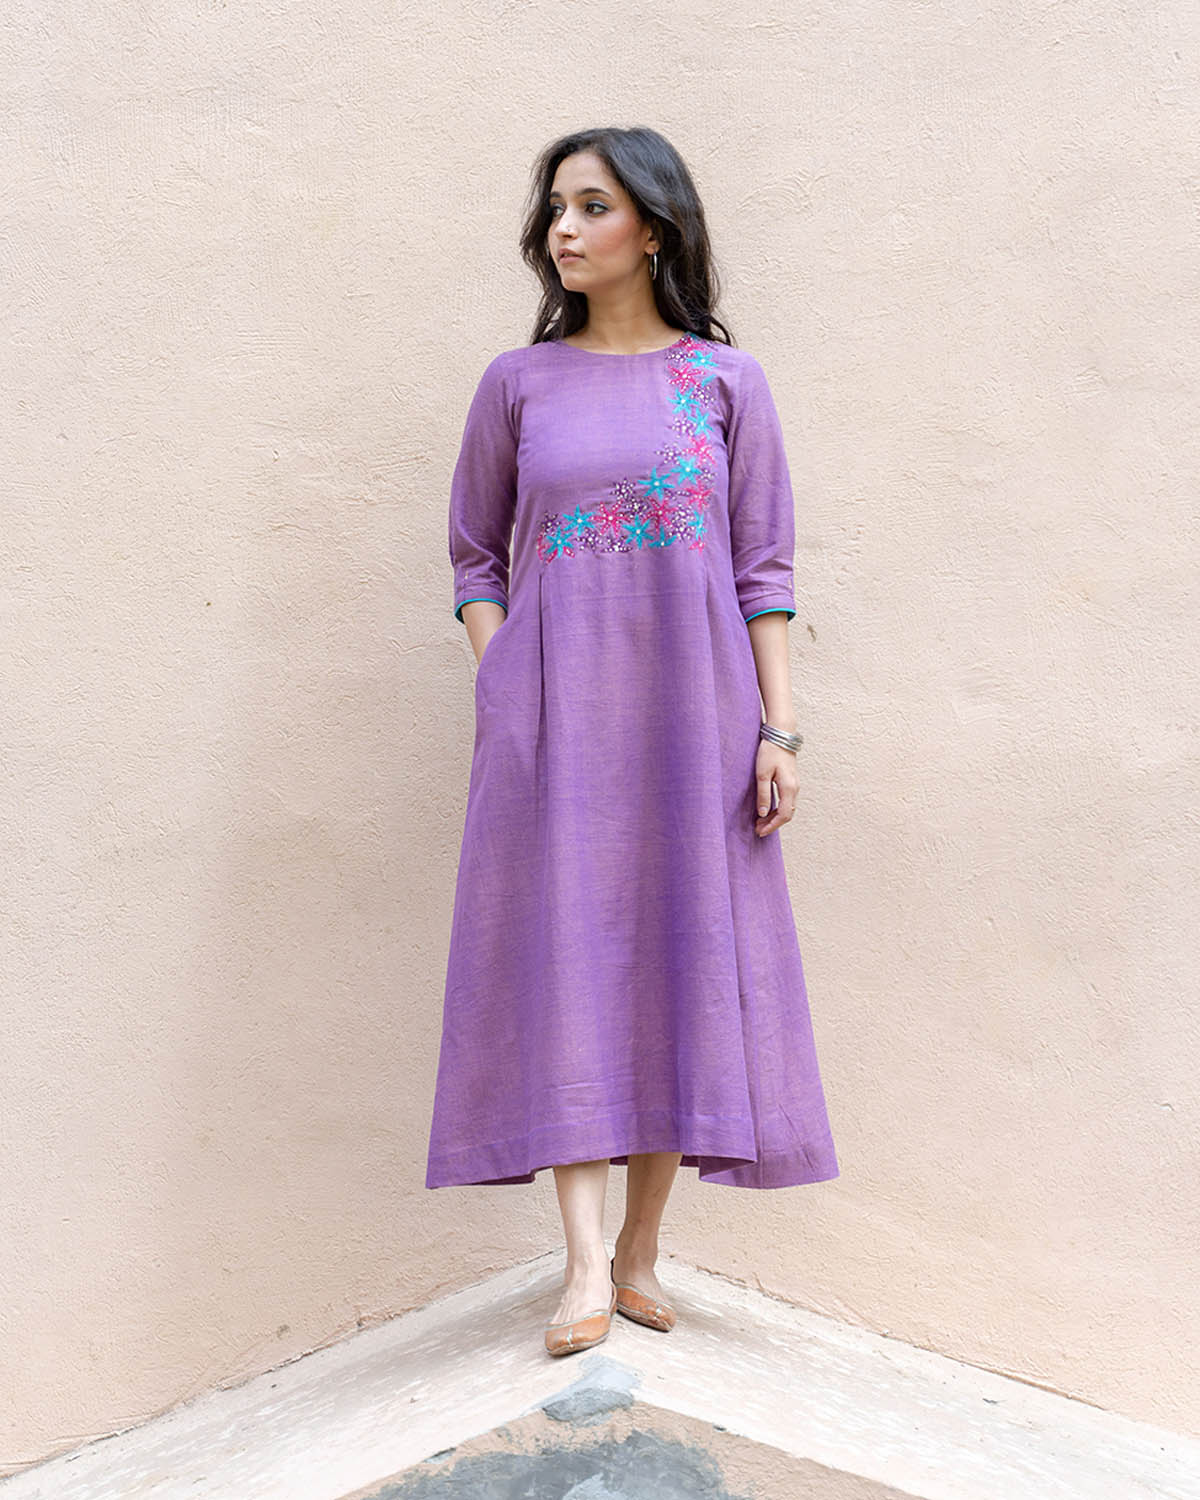 Lavender Handwoven Cotton Dress with Handwork